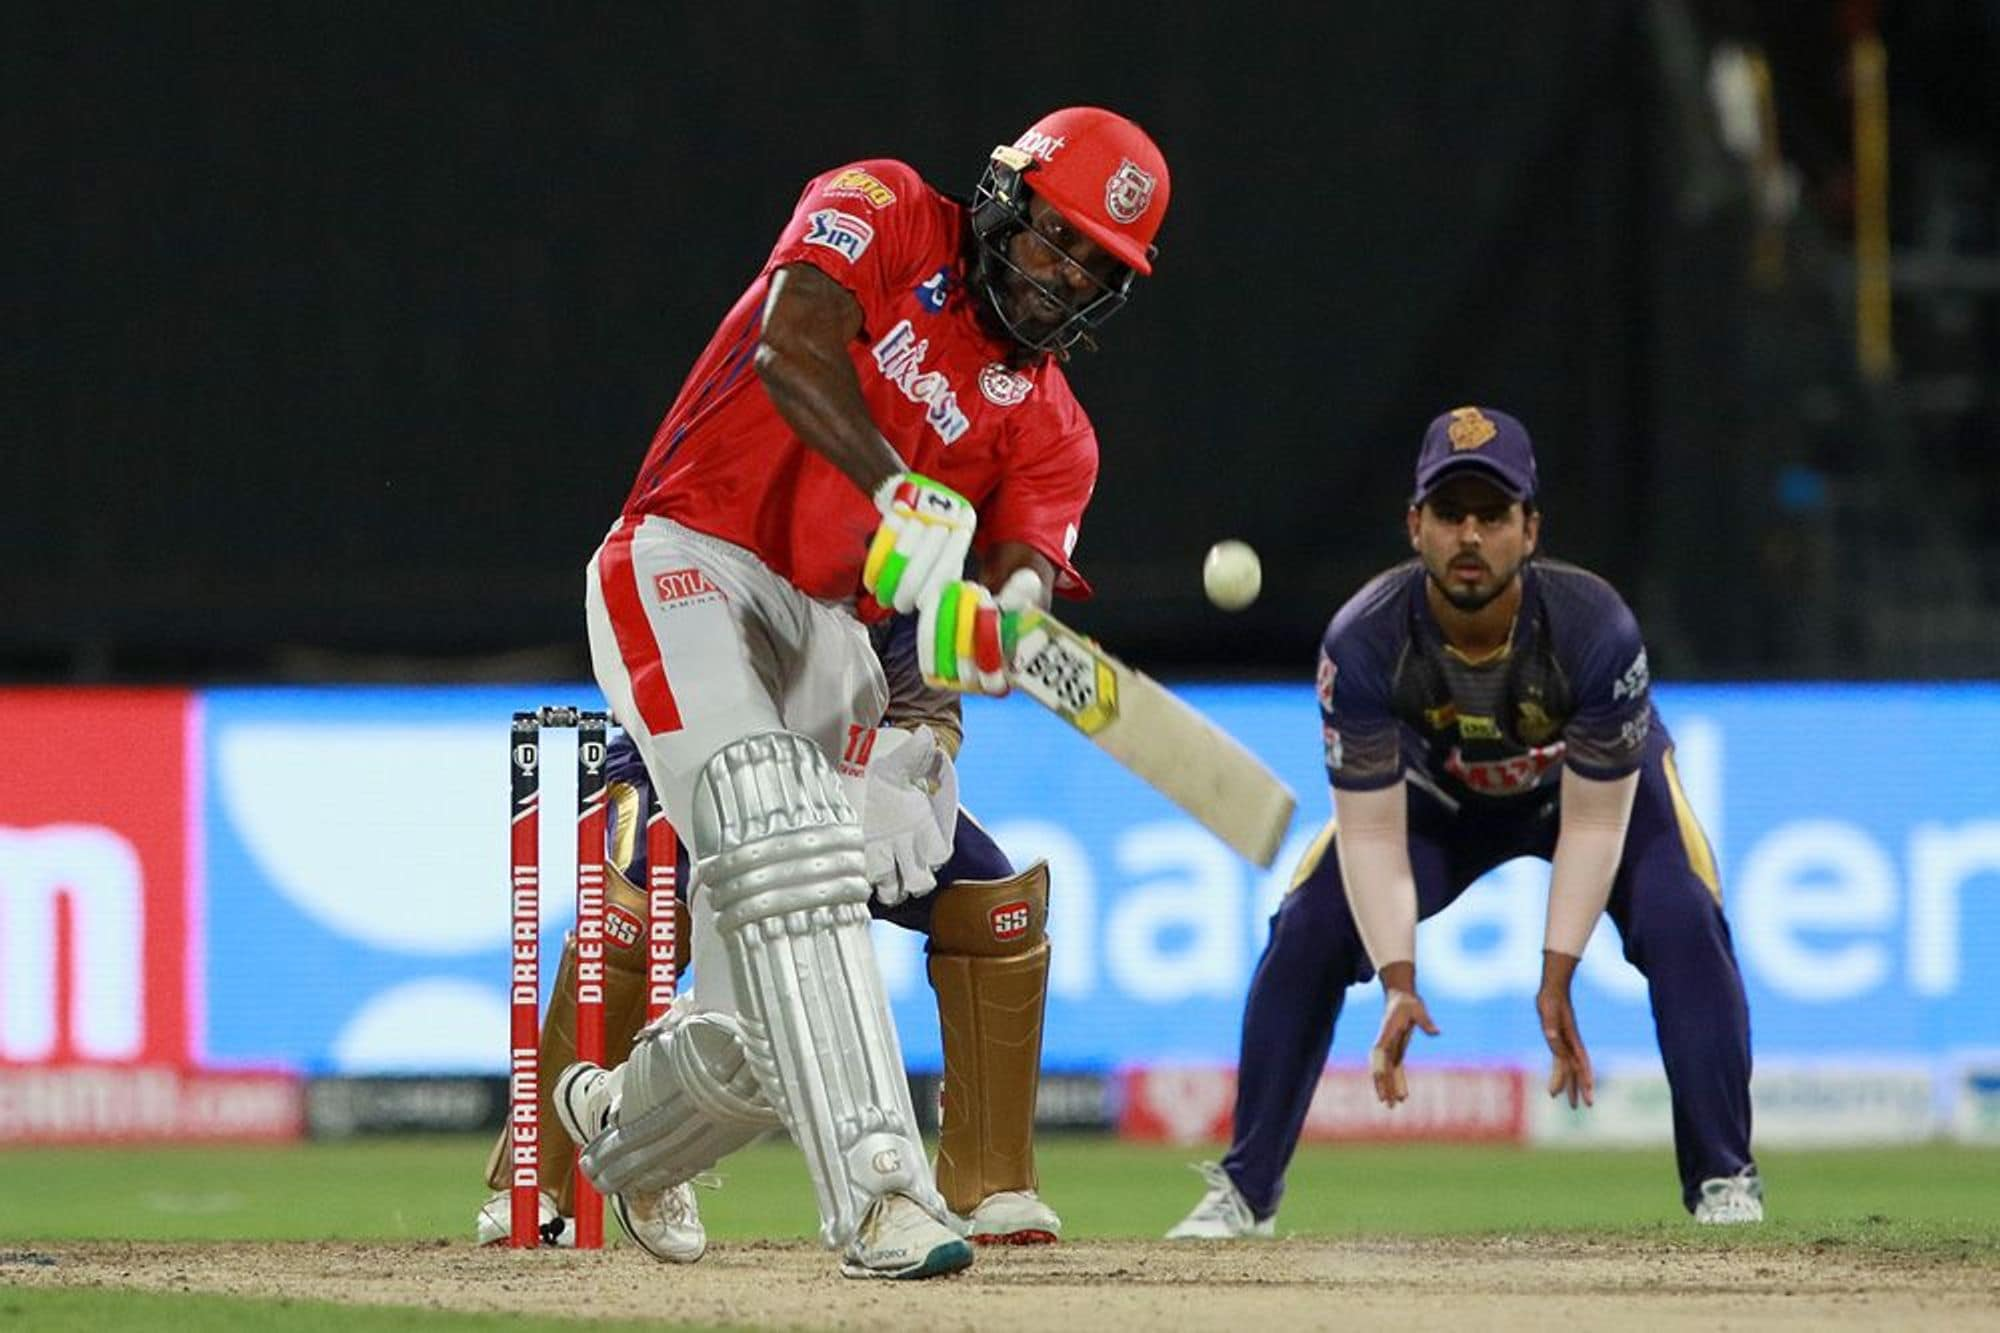 IPL 2020: In Pics, Kolkata Knight Riders vs Kings XI Punjab, Match 46 at Sharjah